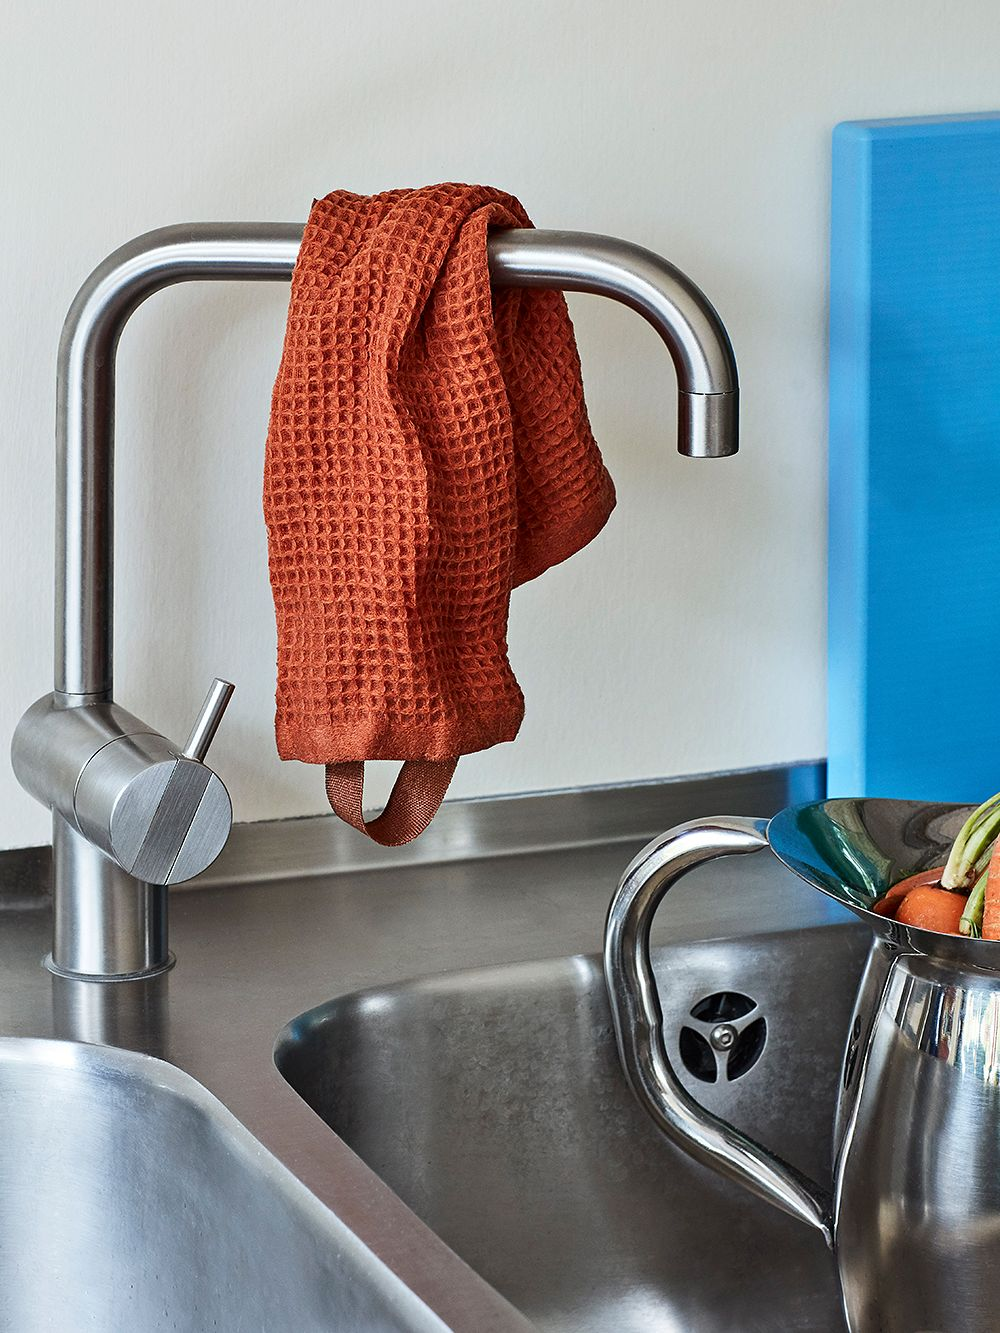 Hay's orange cotton dish cloth hanged over a faucet.